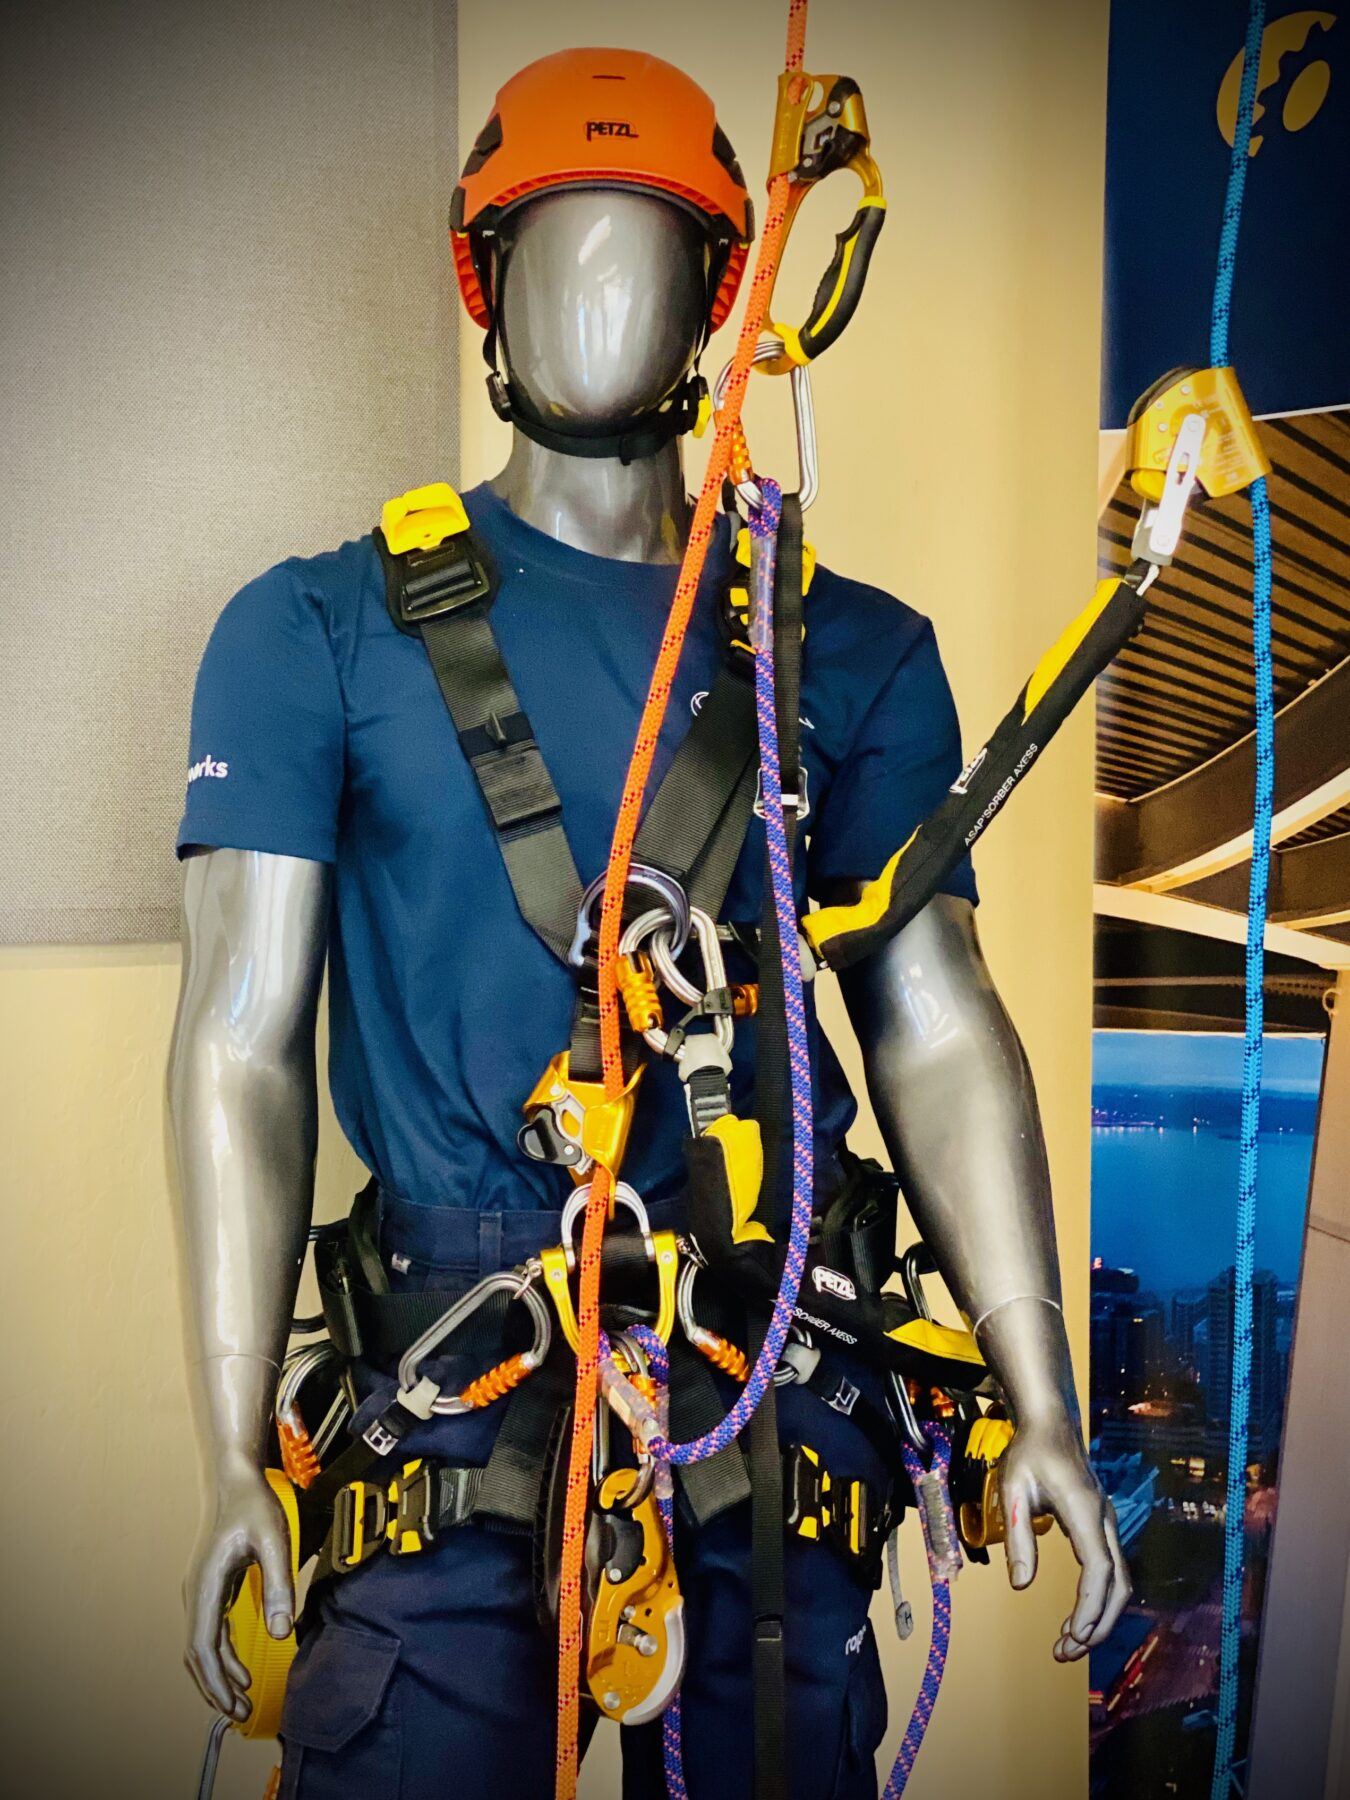 Petzl Technical Partner - MISTRAS/Ropeworks - fall protection equipment